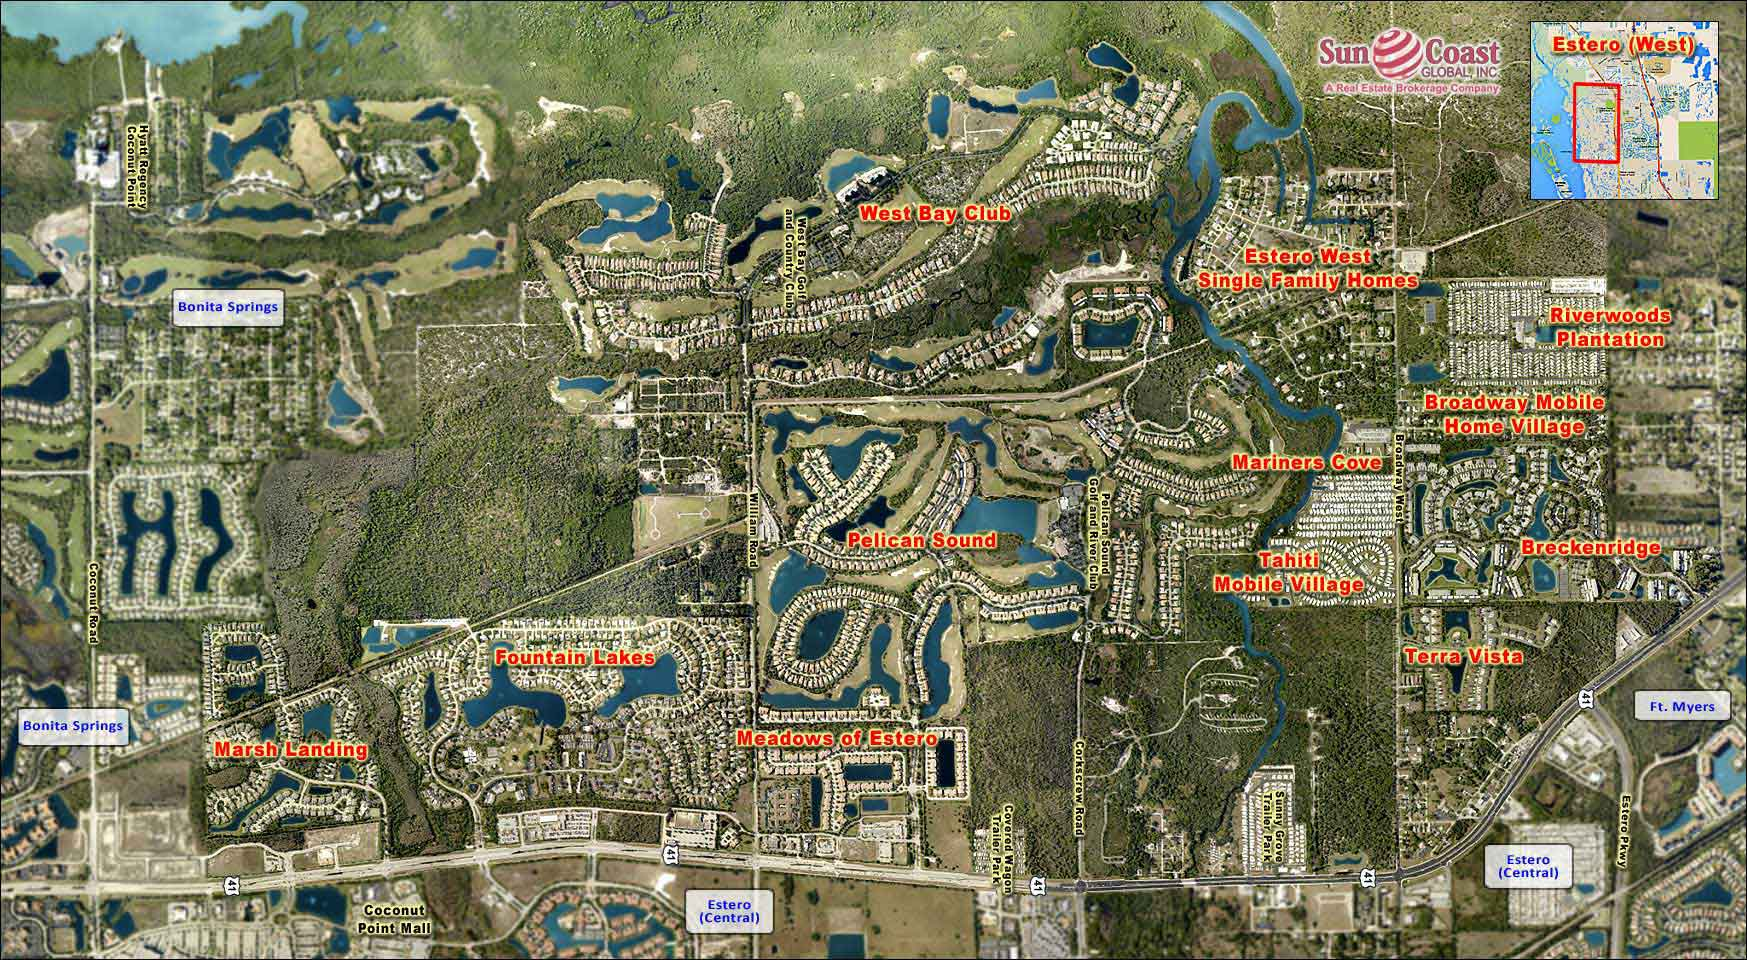 Estero West Overhead Map